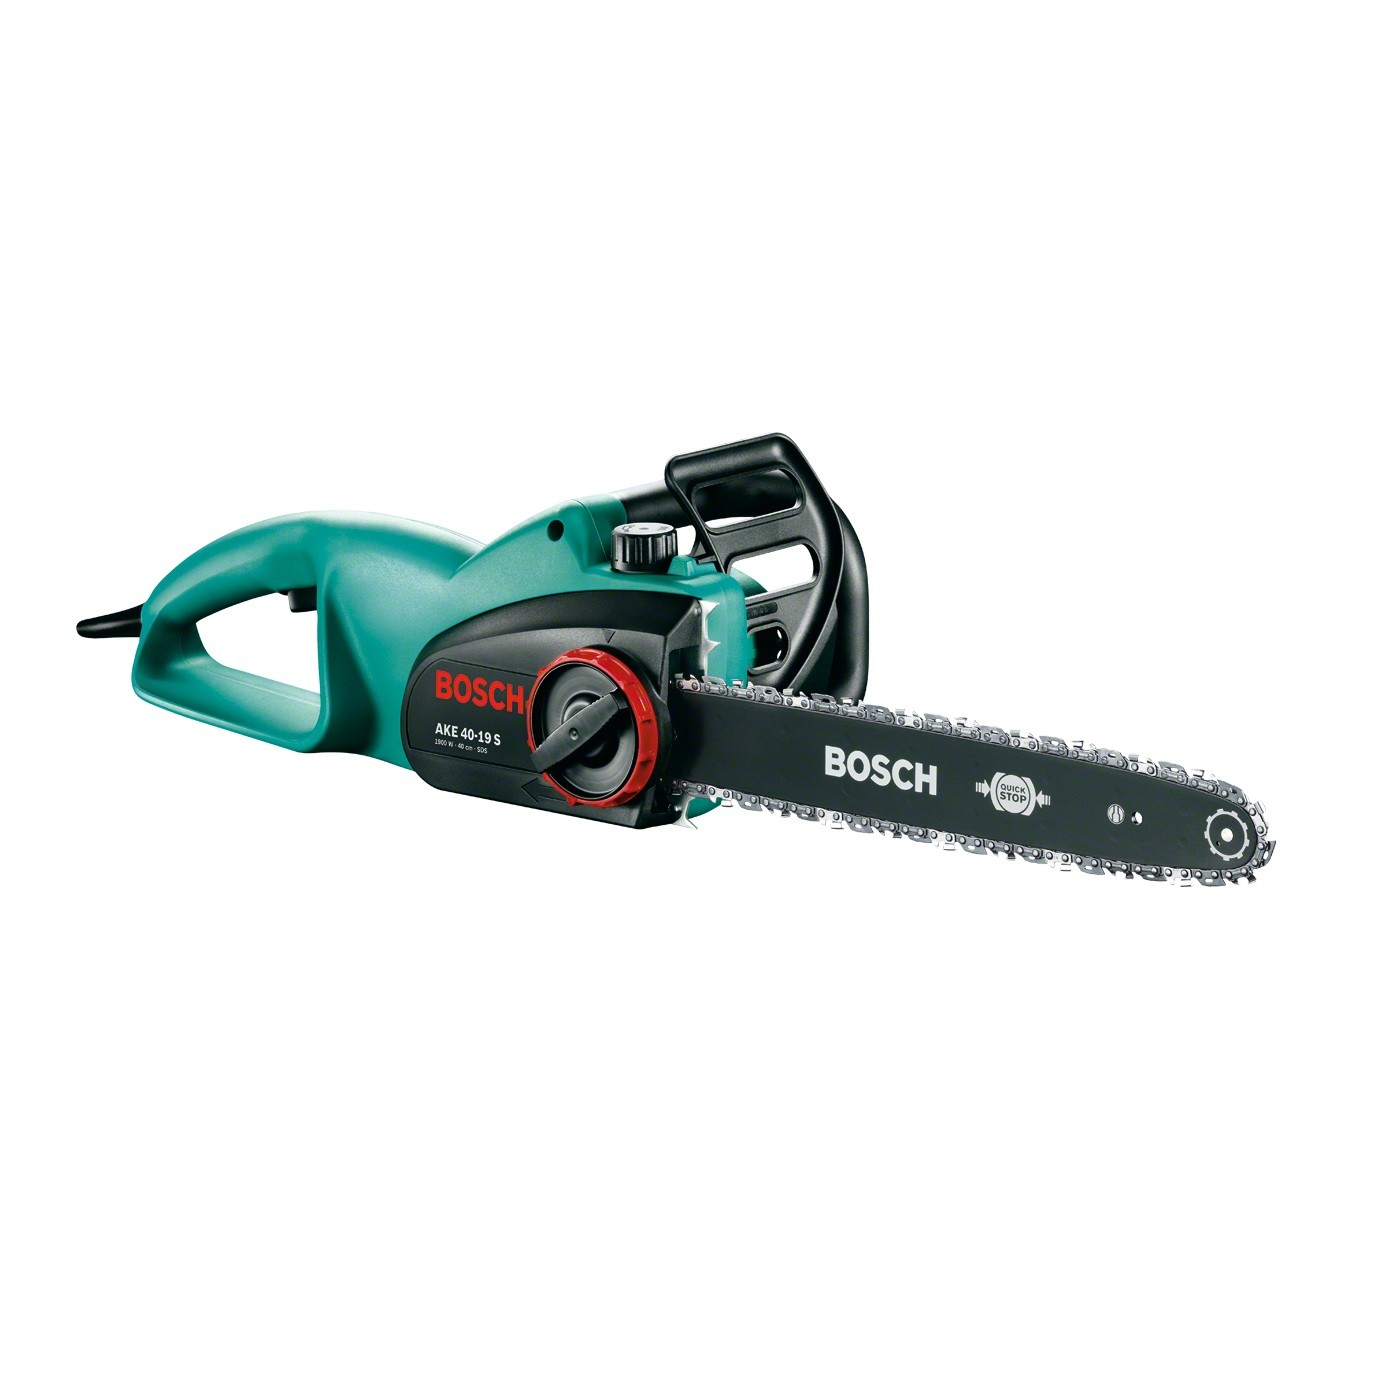 Bosch Green AKE 40-19 S Corded Chainsaw 1900W 240v 0600836F42